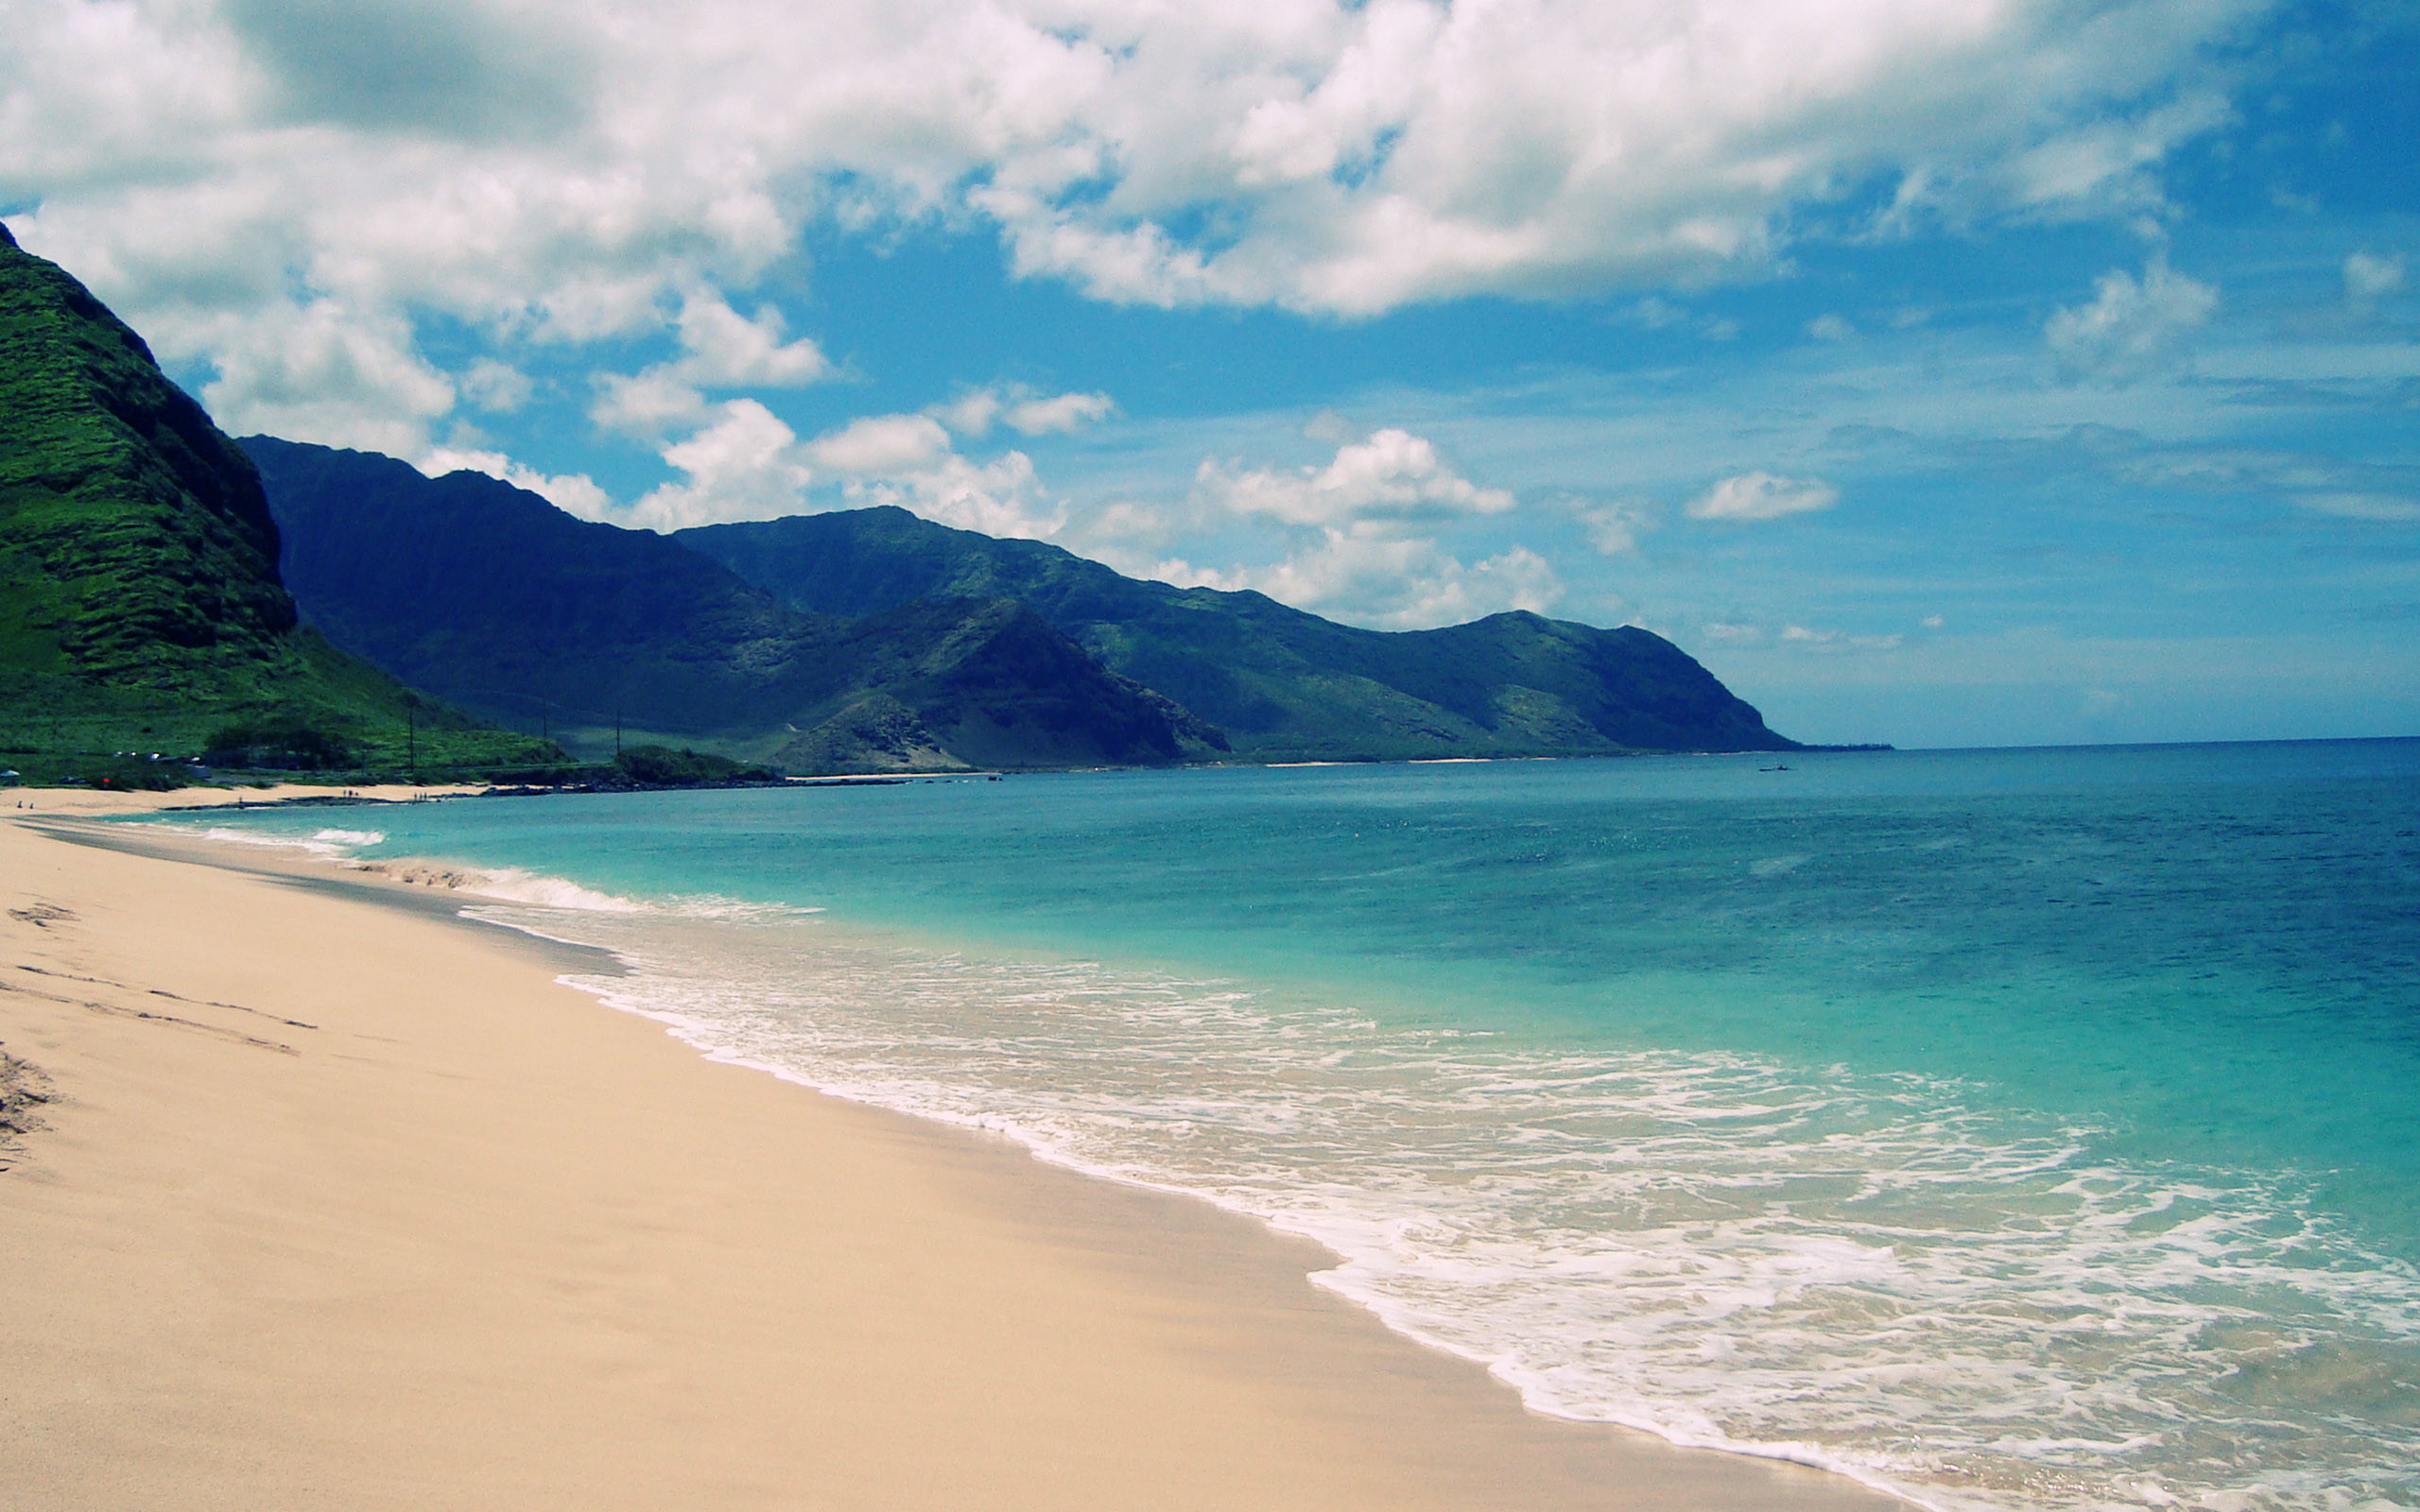 Hawaii Beach Wallpaper for PC | Full HD Pictures